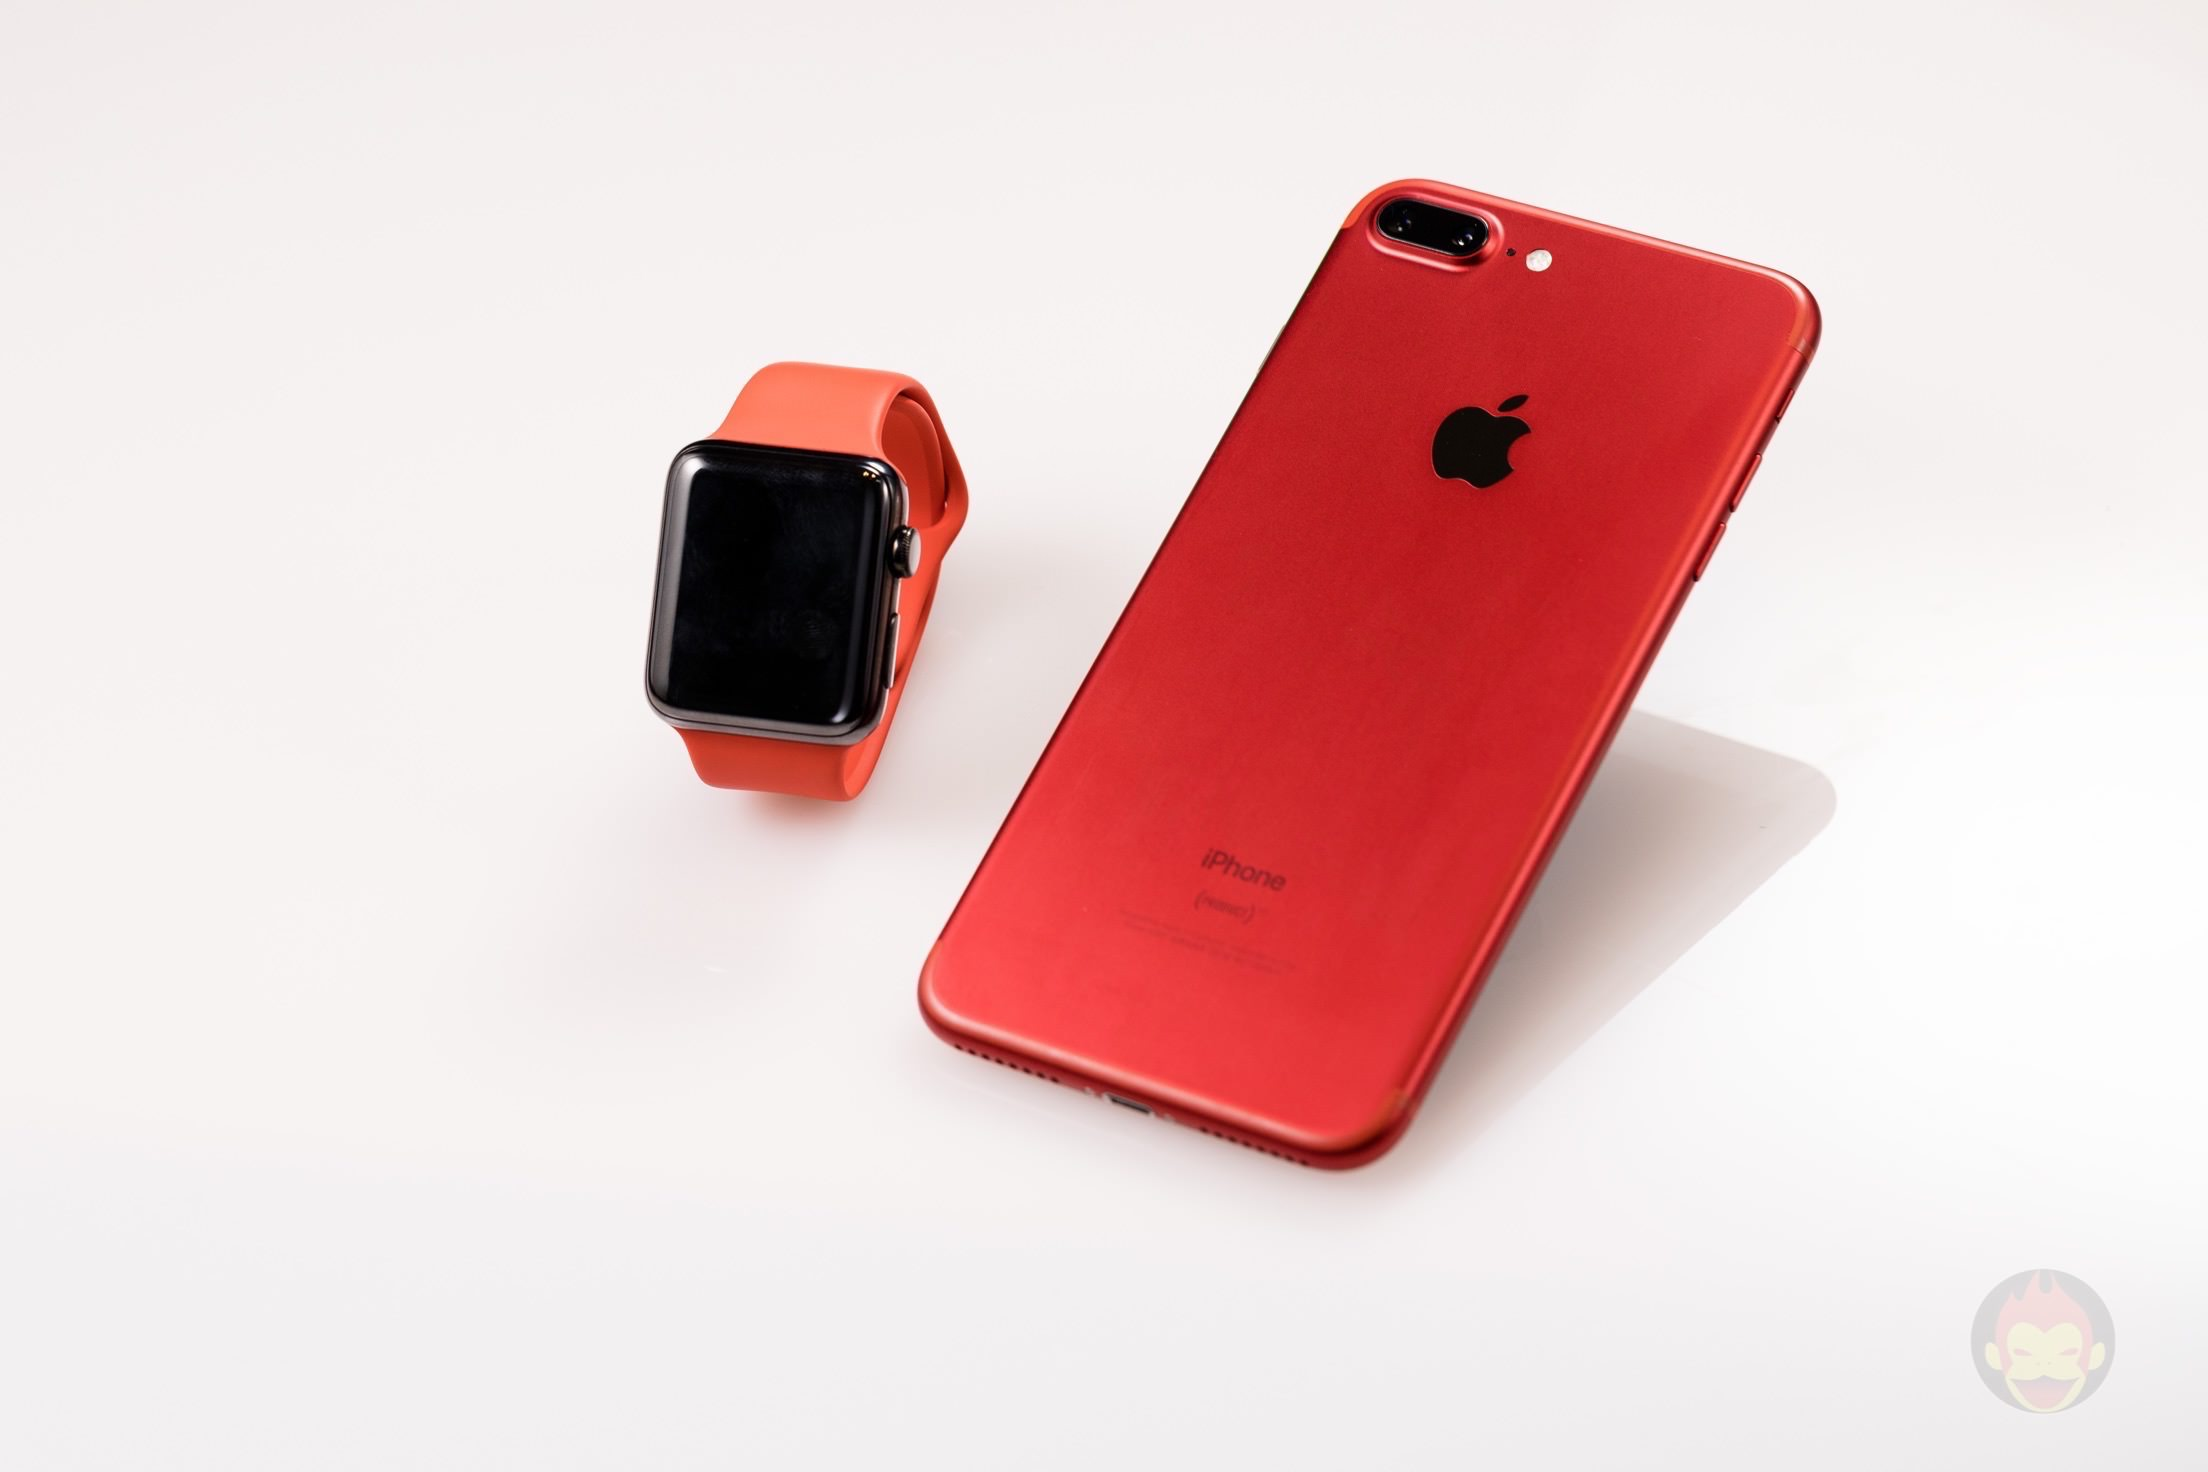 iPhone-7-Product-Red-Special-Edition-20.jpg